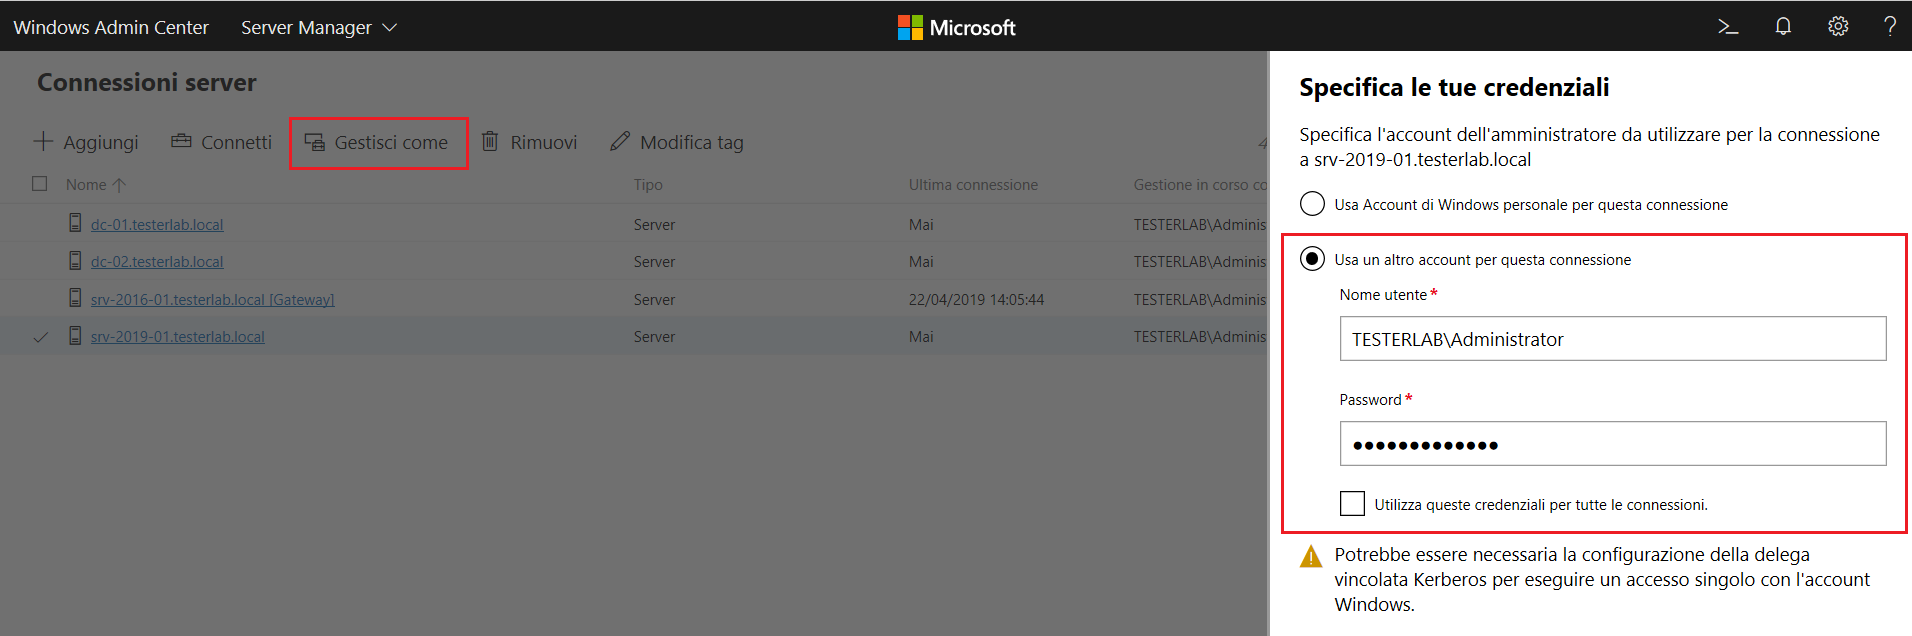 Windows Admin Center - Autenticazione